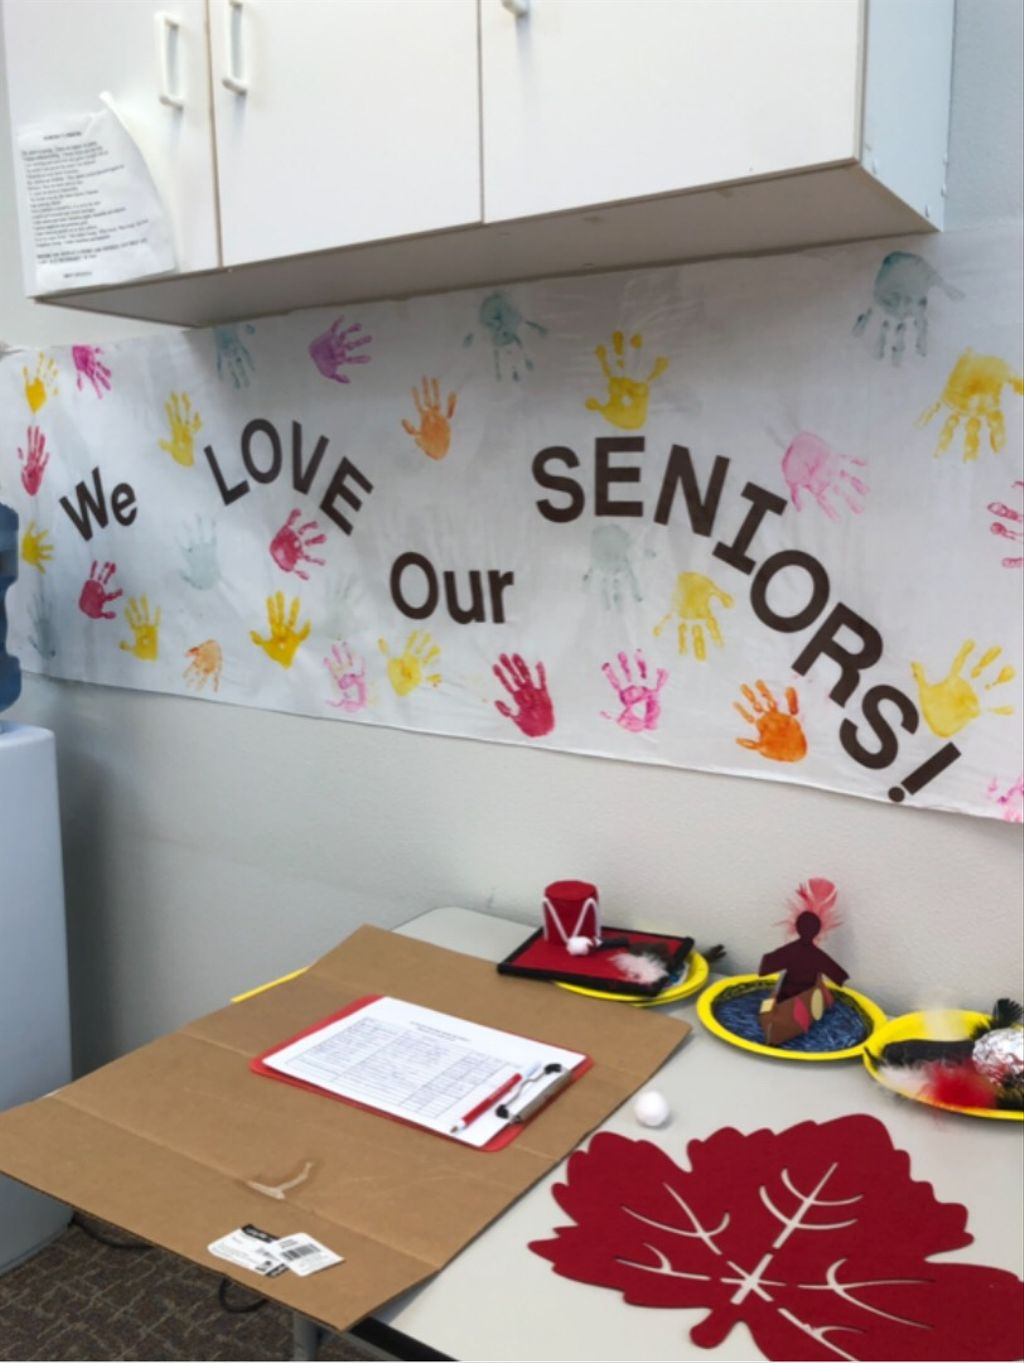 """Decorated office space with painted handprints and text that reads """"We love our seniors!"""""""